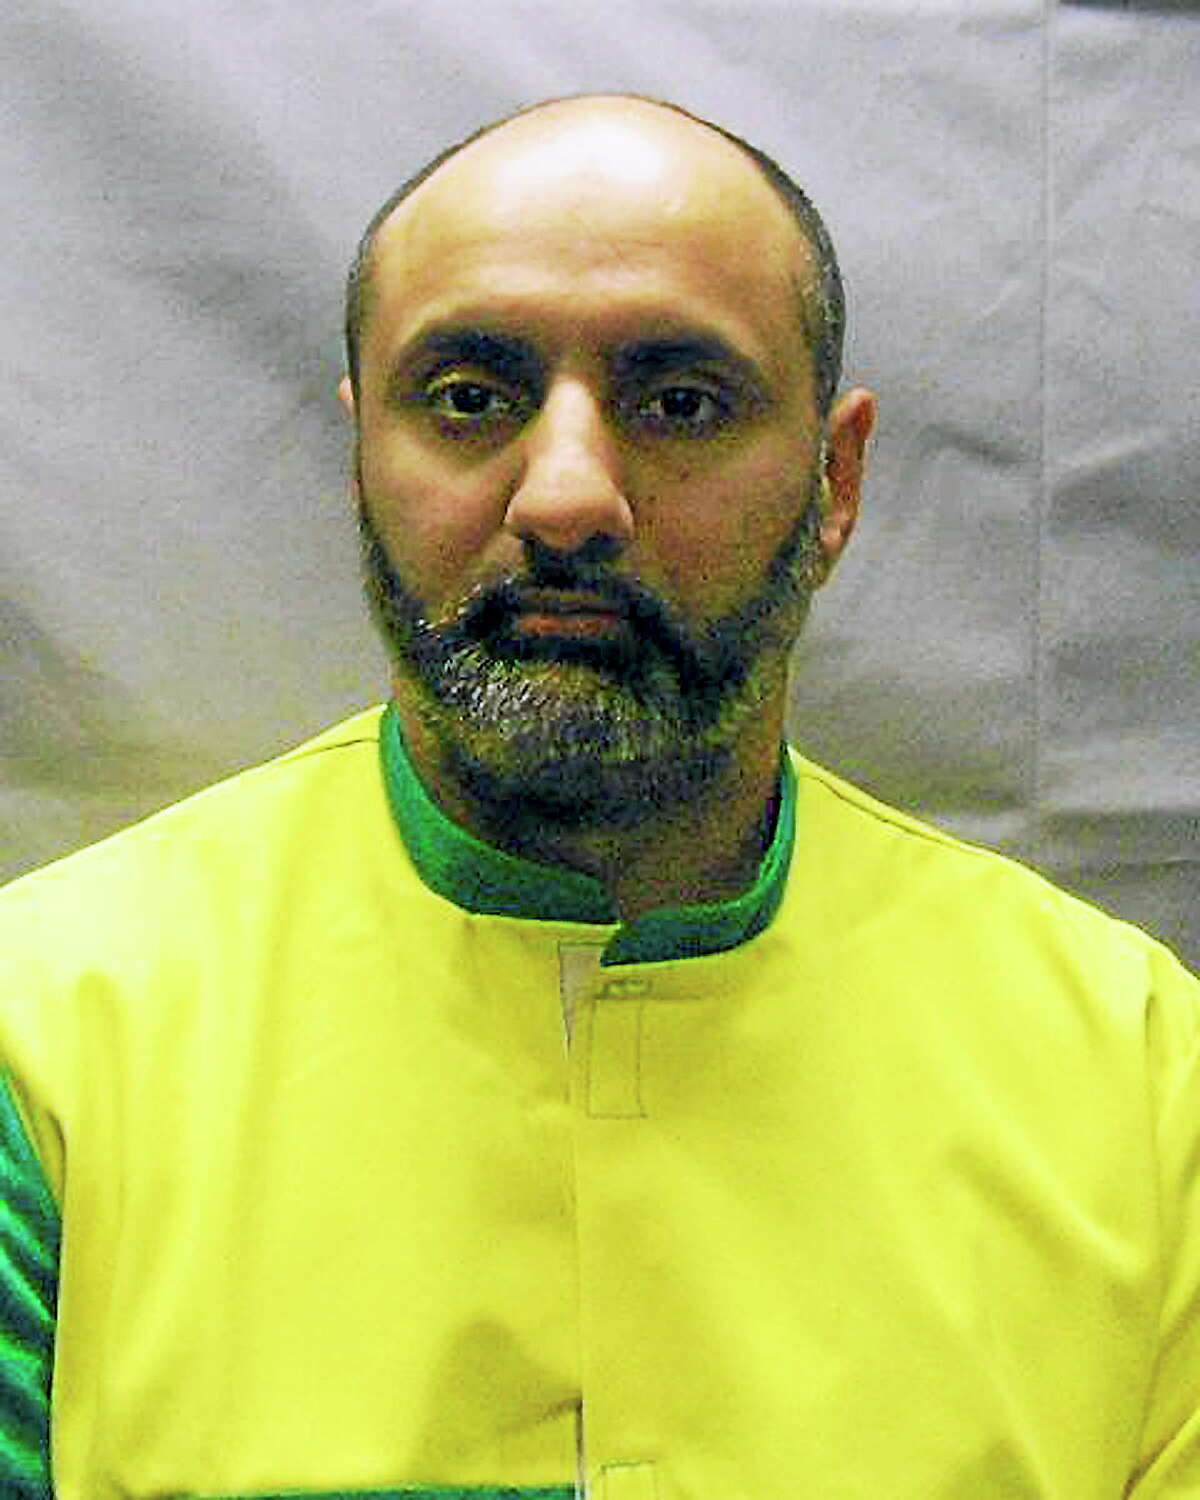 This Nov. 9, 2012 photo provided by the U.S. Attorney's Office shows Babar Ahmad, extradited in October 2012 with Syed Talha Ahsan to the United States from Britain on charges of supporting terrorists through websites.